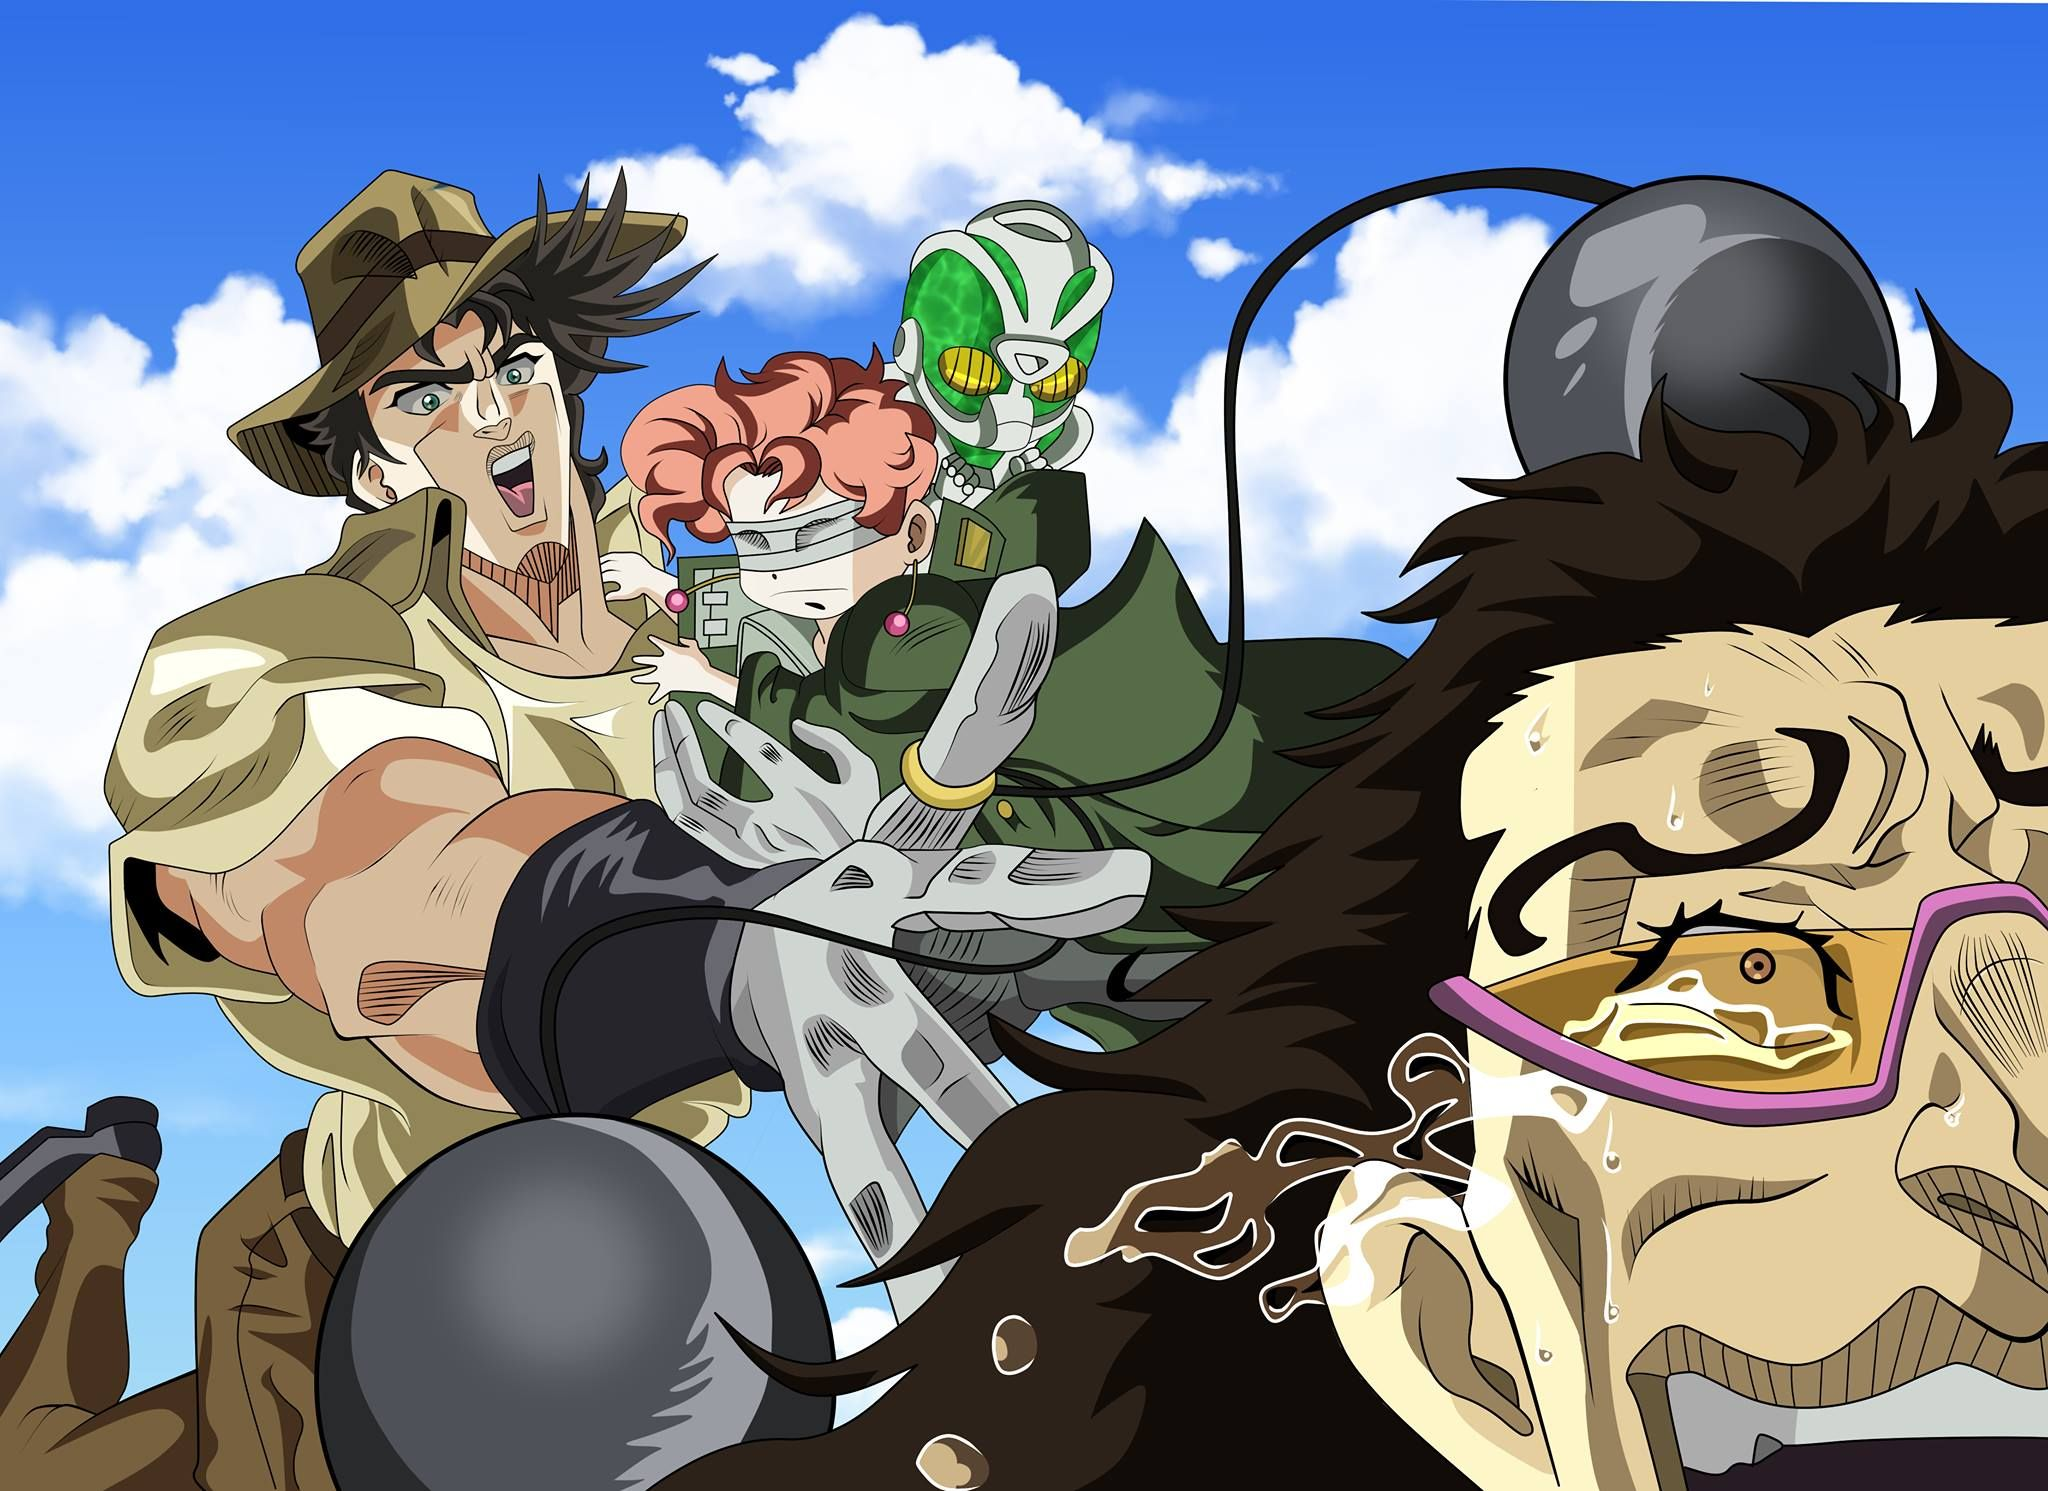 Colored Versions Of The Joseph And Kakyoin Vs Alessi Sketch